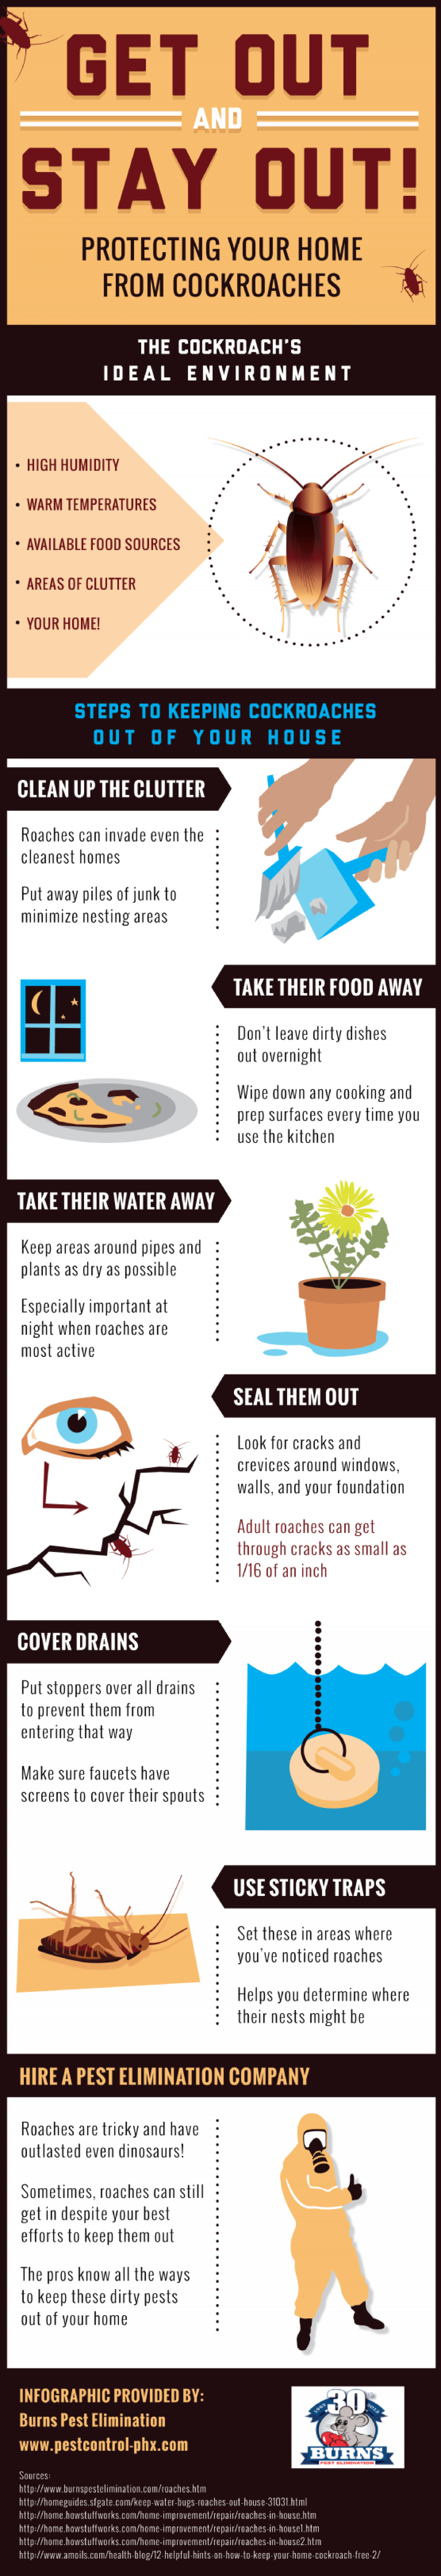 Get Out and Stay Out! Protecting Your Home from Cockroaches Infographic